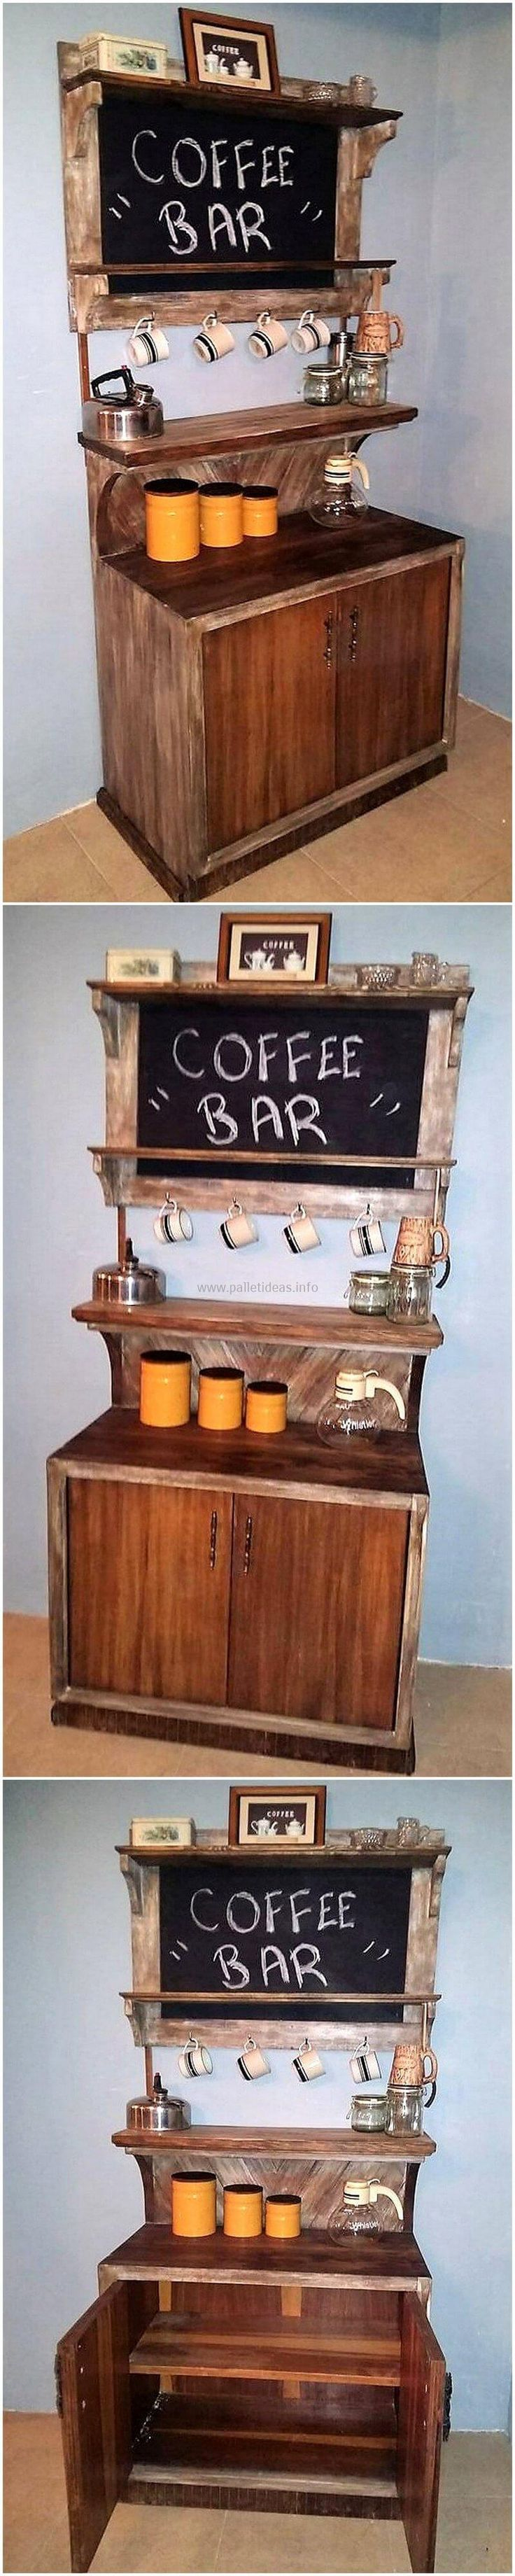 Best 25+ Recycled pallets ideas on Pinterest | Recycled ...